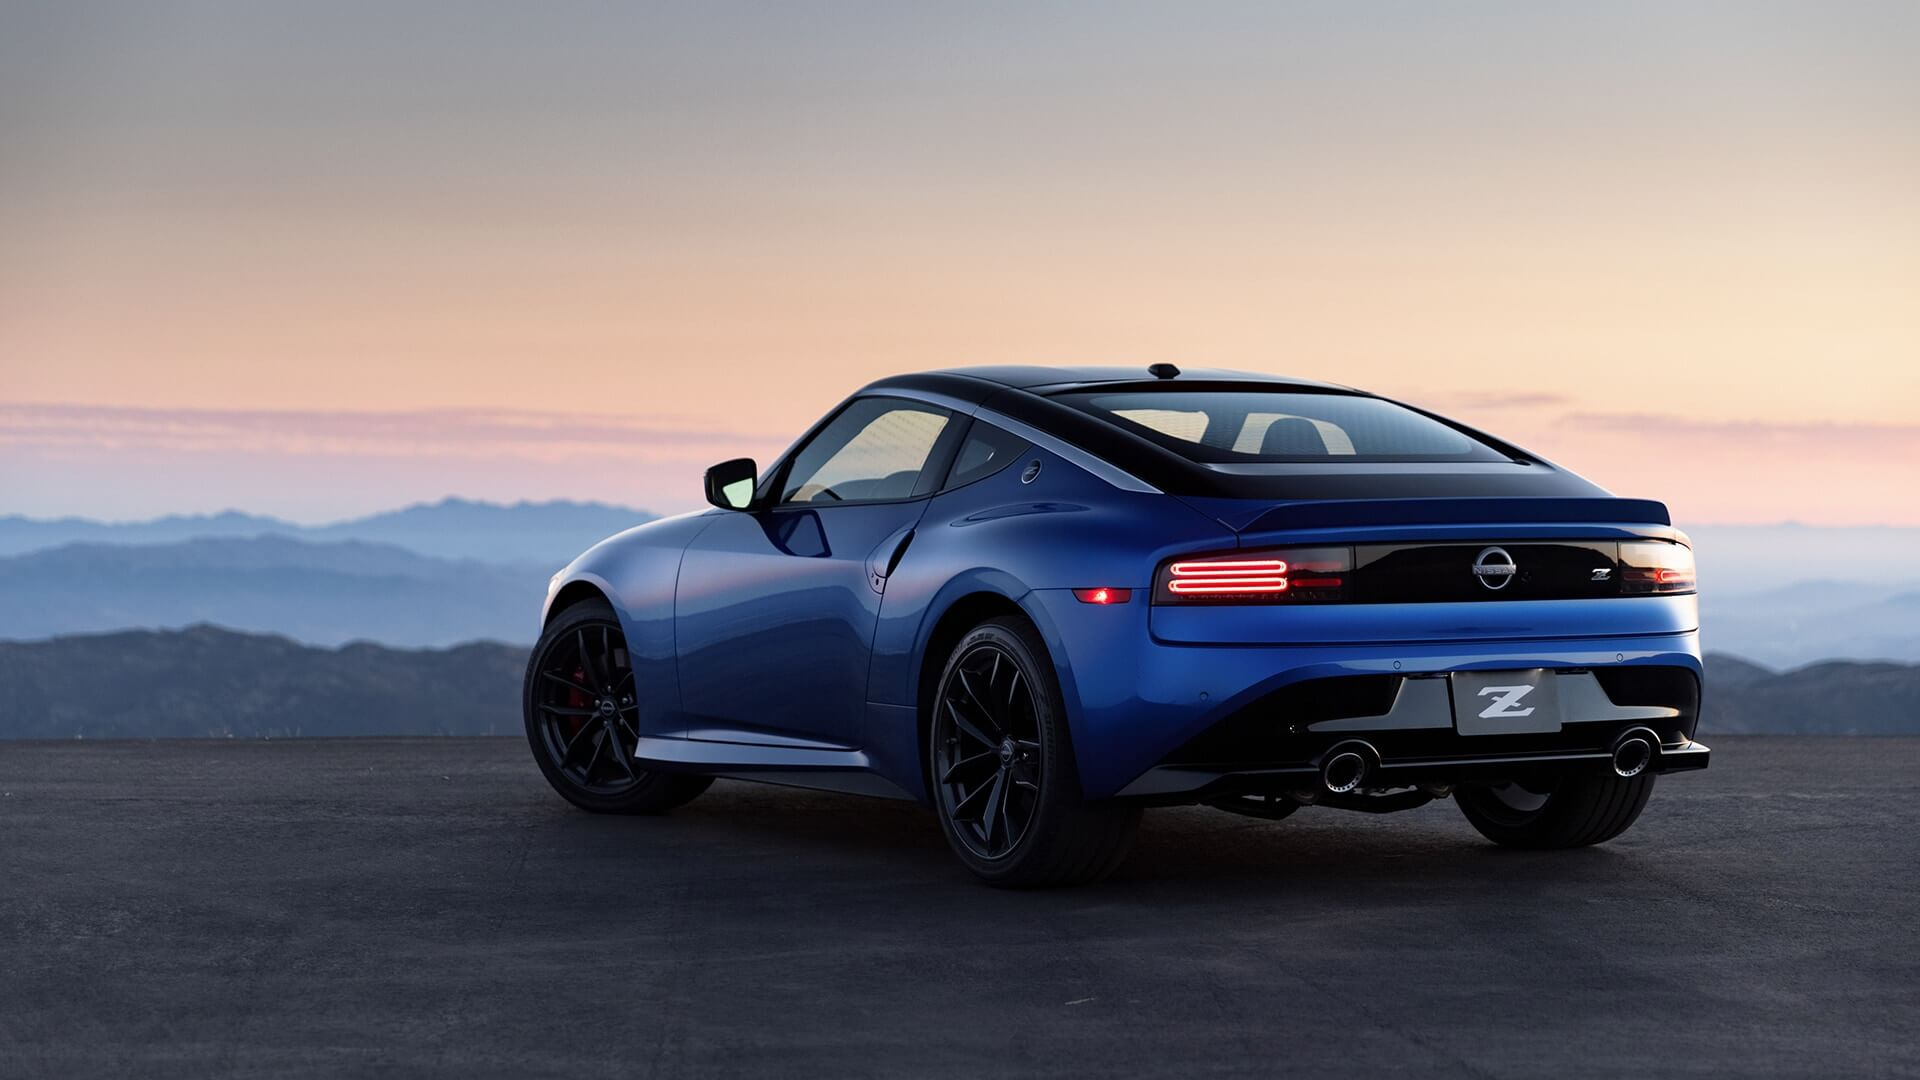 The all new 2023 Nissan 400 z with a sunset peaking through in the background